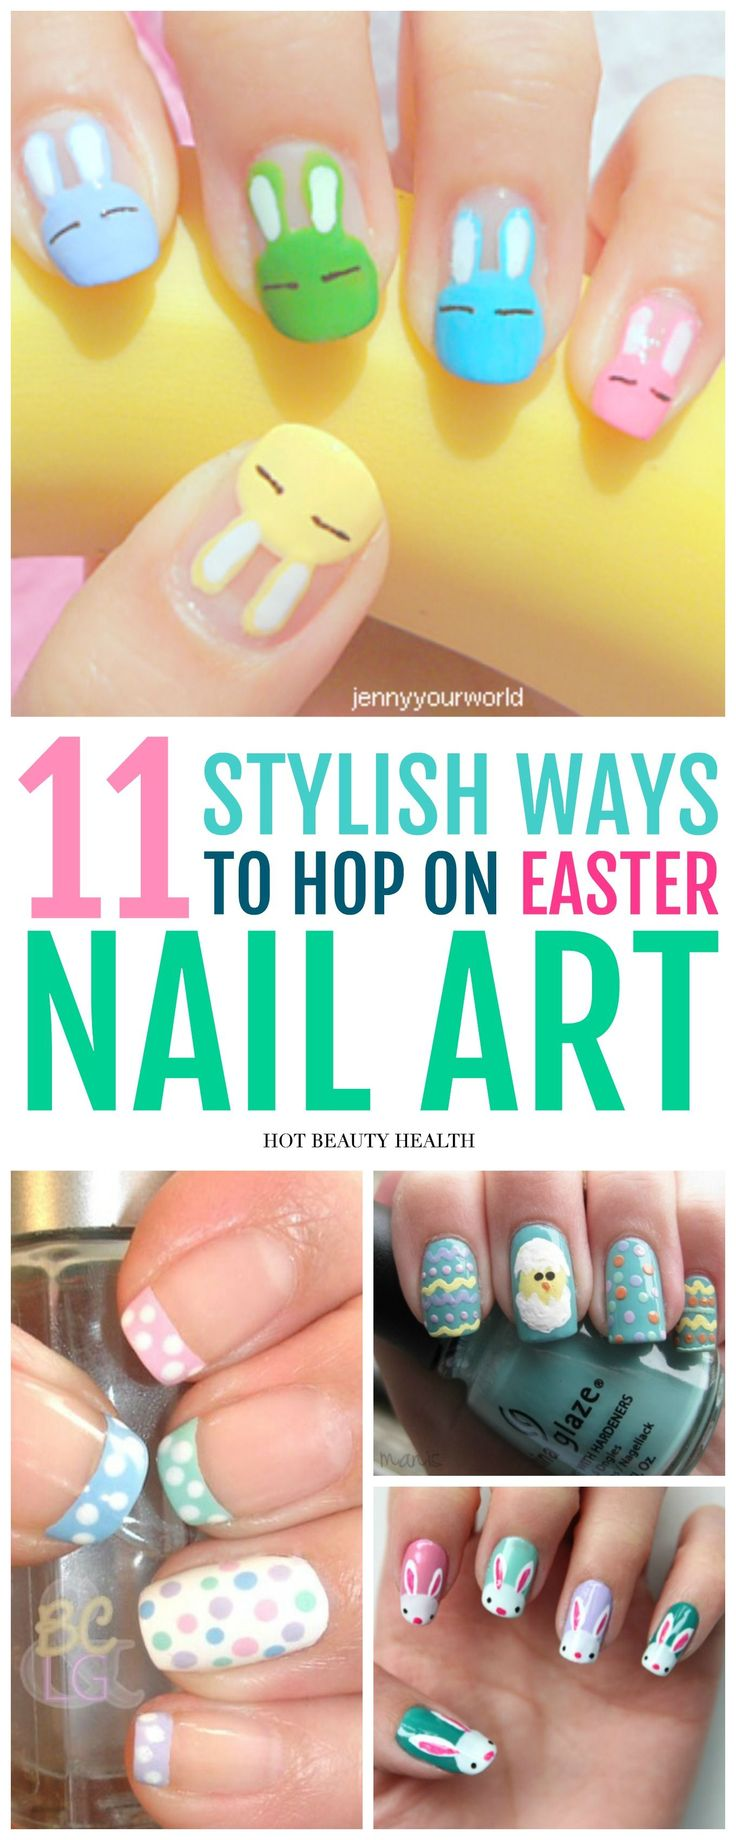 Here's a curated list of 11 DIY easter nail art designs with the hottest nail color shades for the spring season! They're easy to recreate and super fun to do. From simple ideas like pastel shades to easter eggs and cute bunnies, click pin to find a step by step tutorial for you! Hot Beauty Health #nailart #easternailart #easter #diynails #nailtutorials